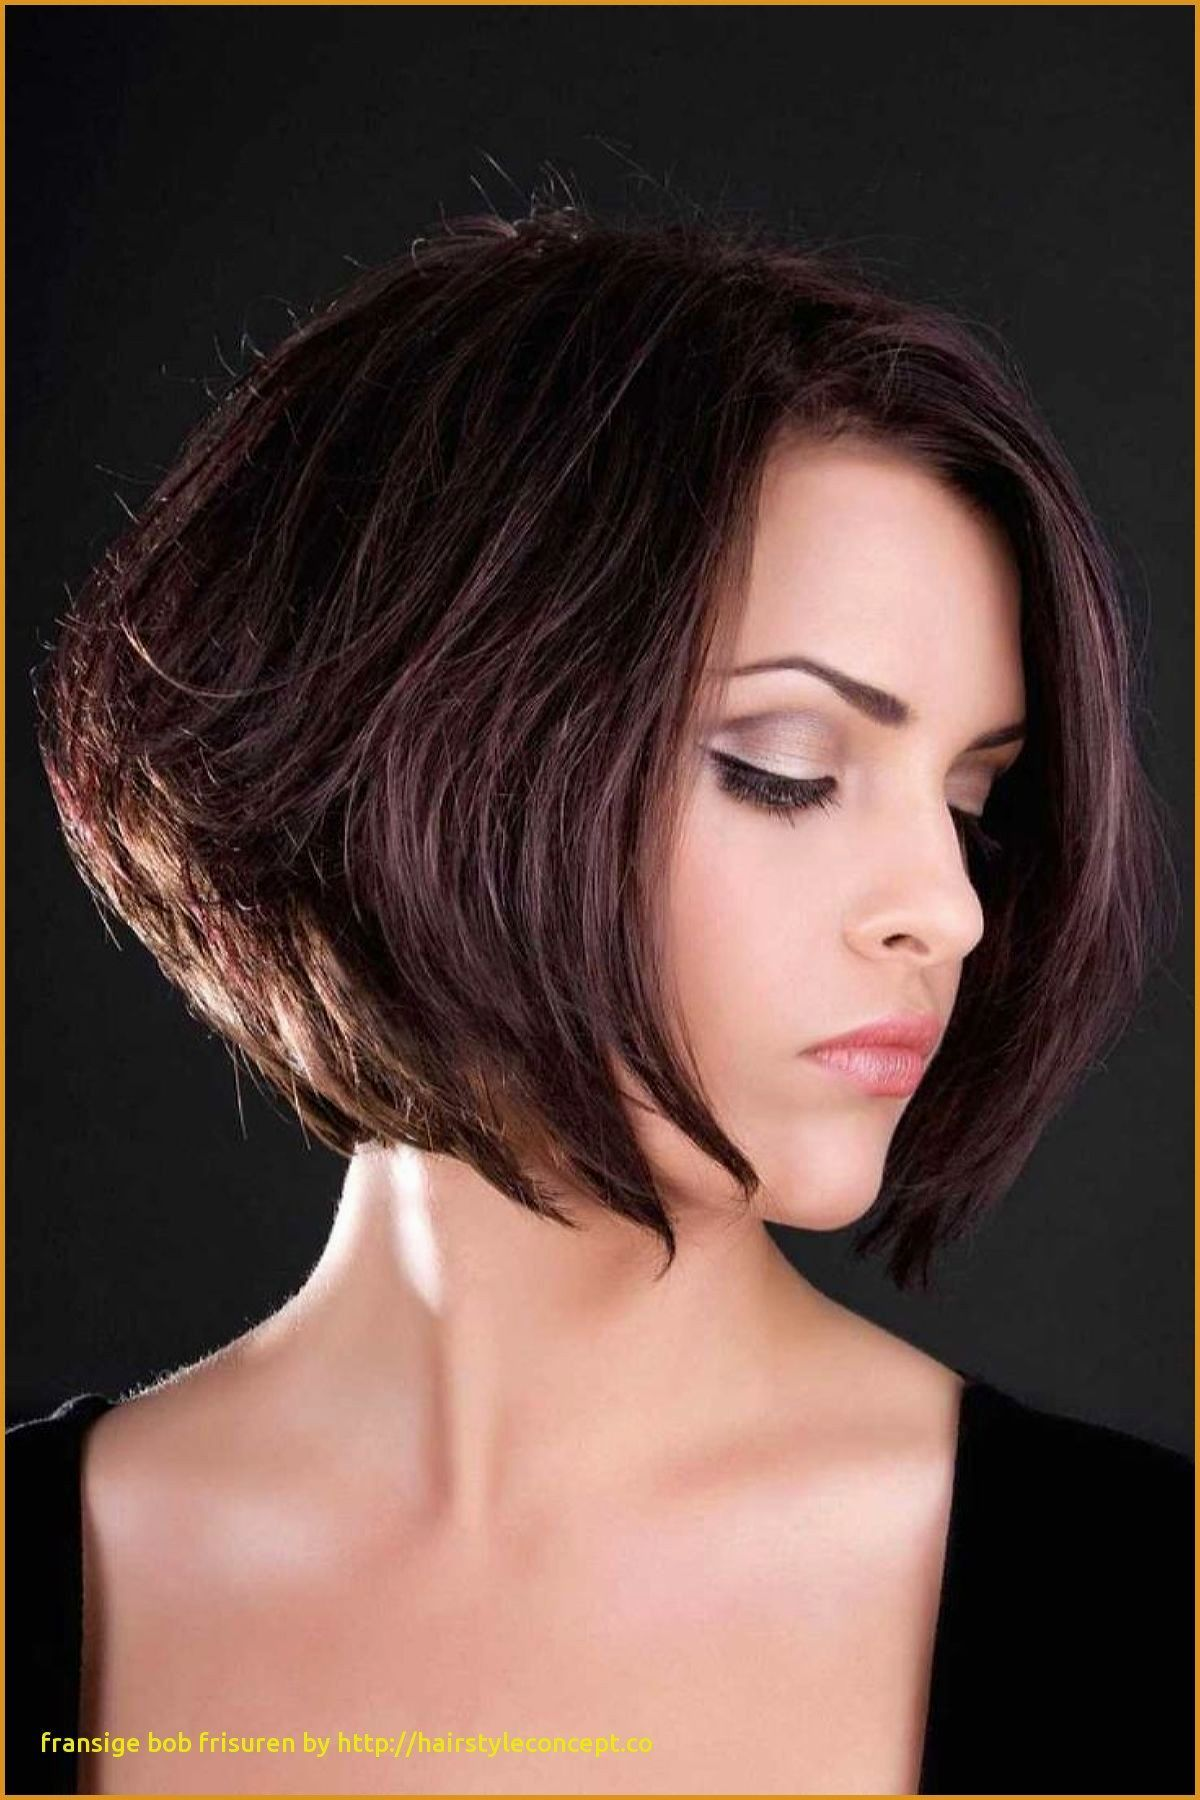 Wonderful Fringe Bob Hairstyles Architecture Architecture Fringe